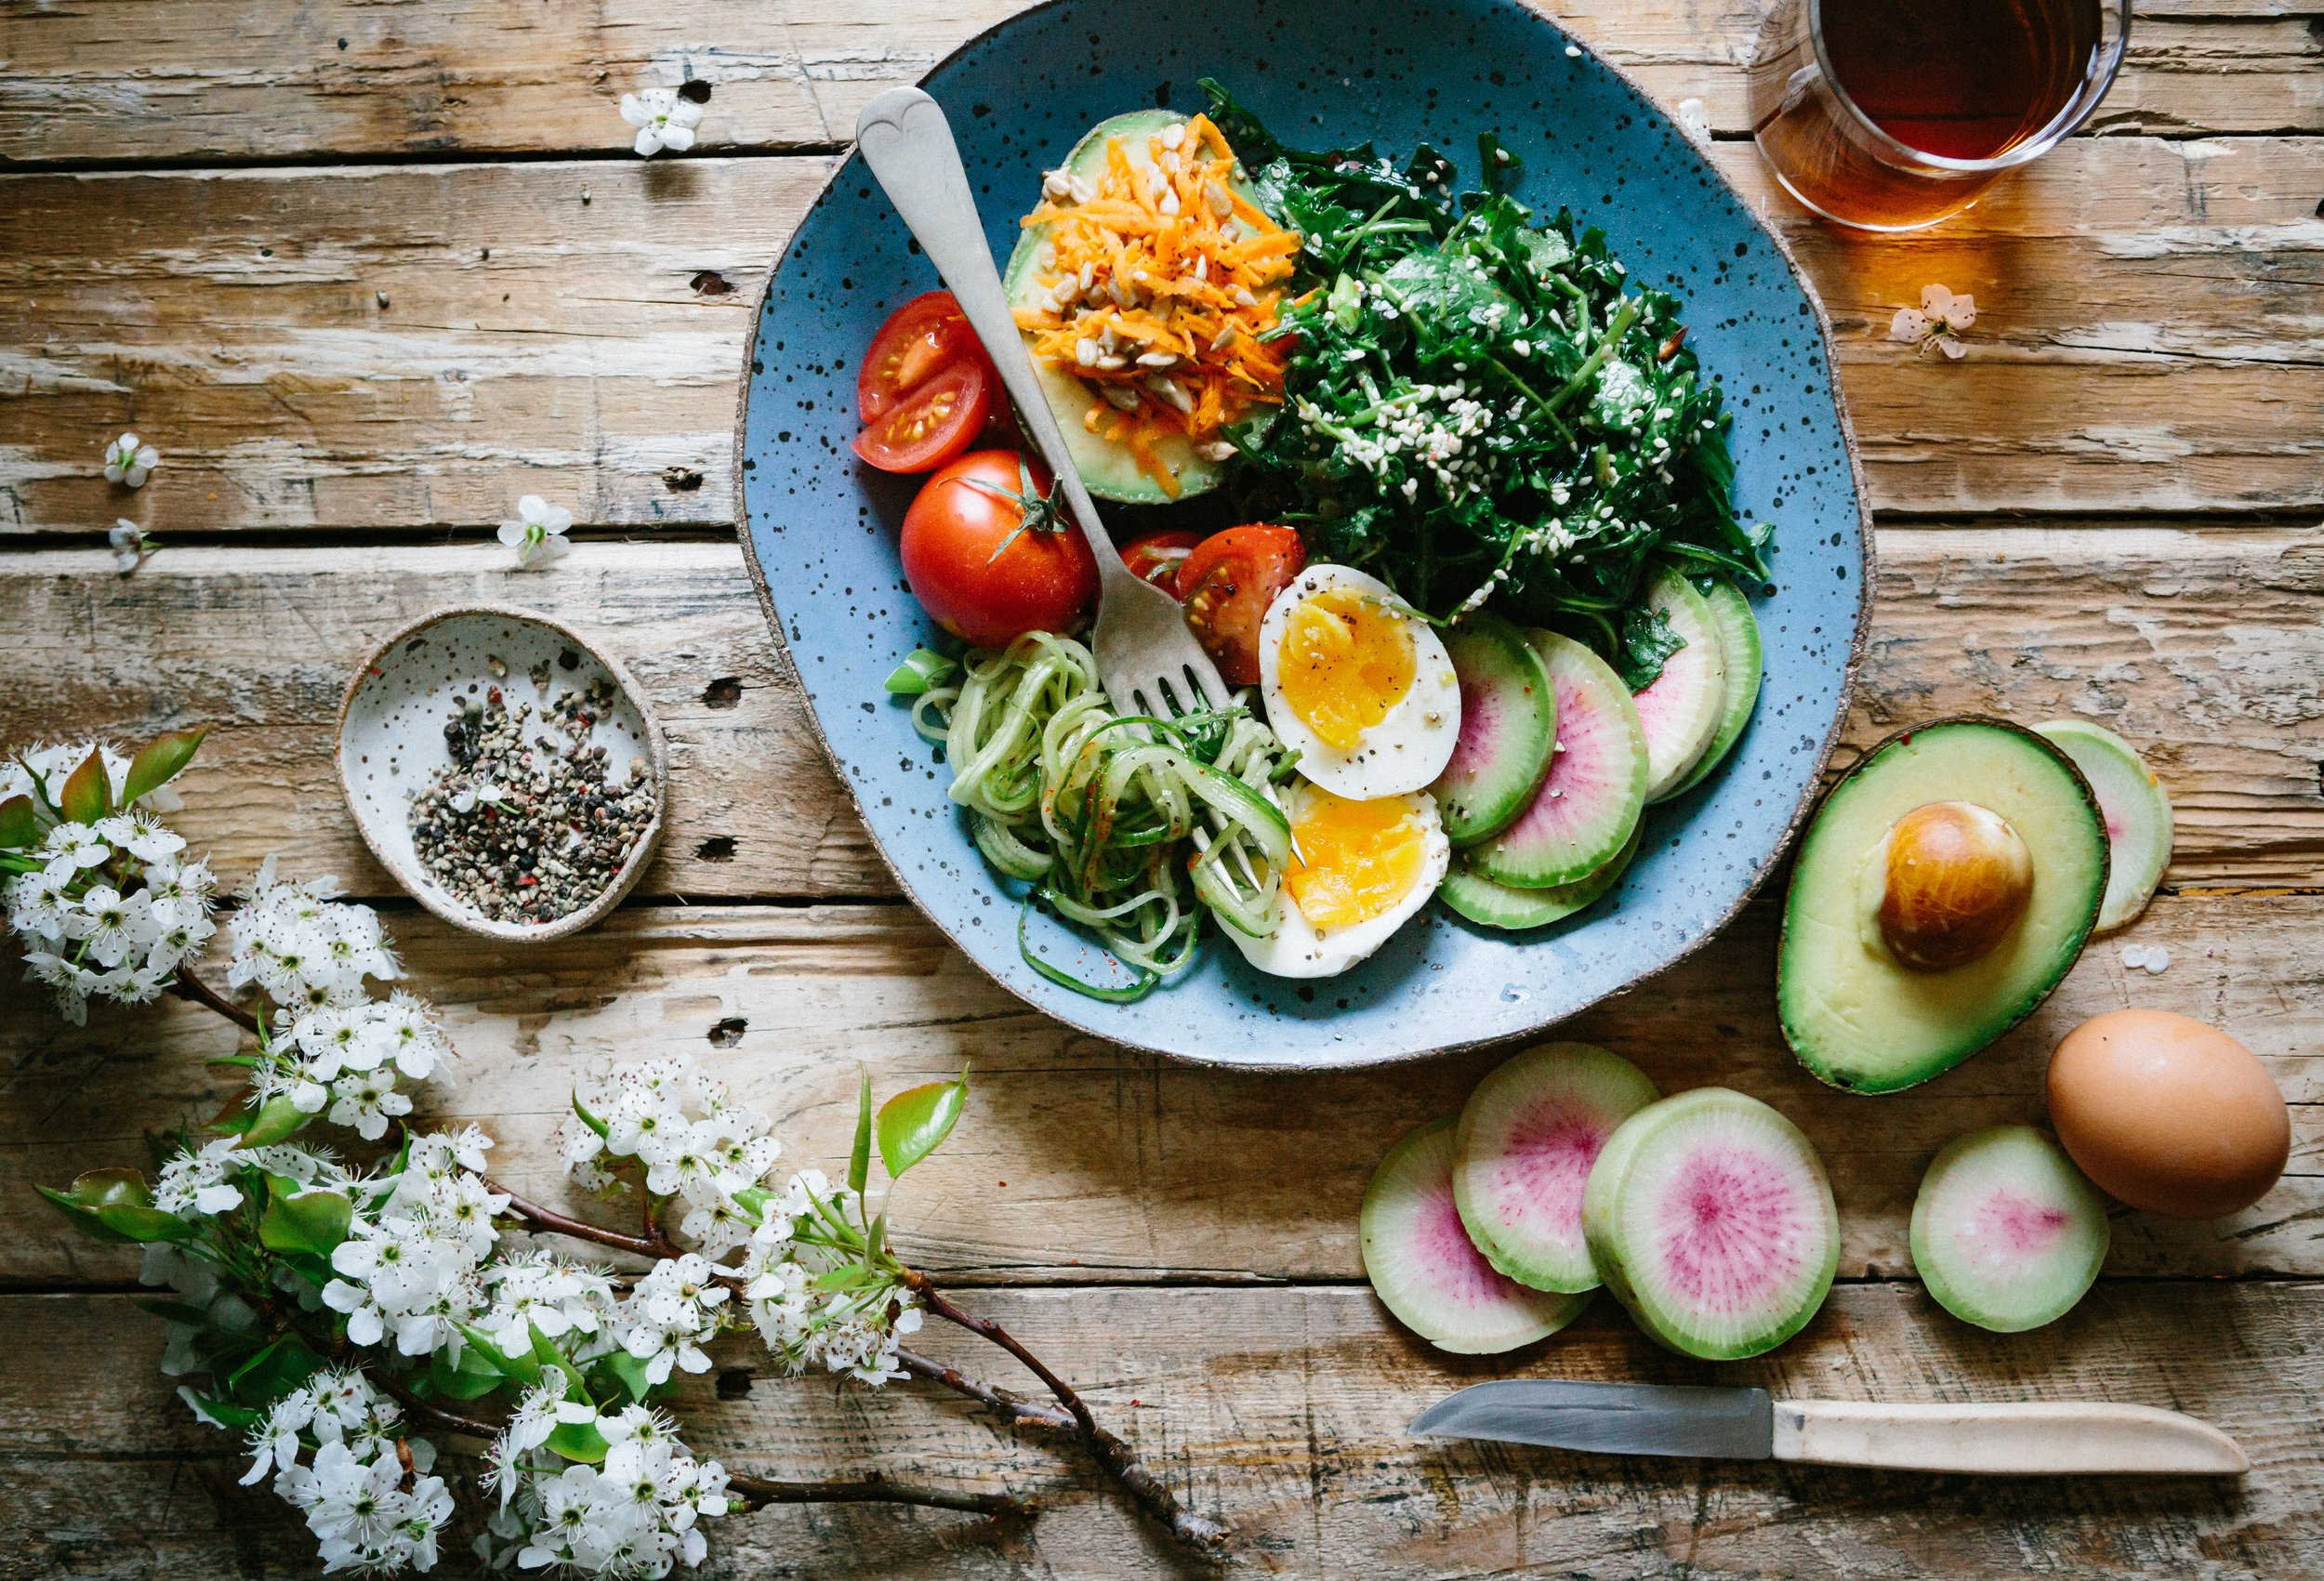 Healthy Food from Nutrition Coach